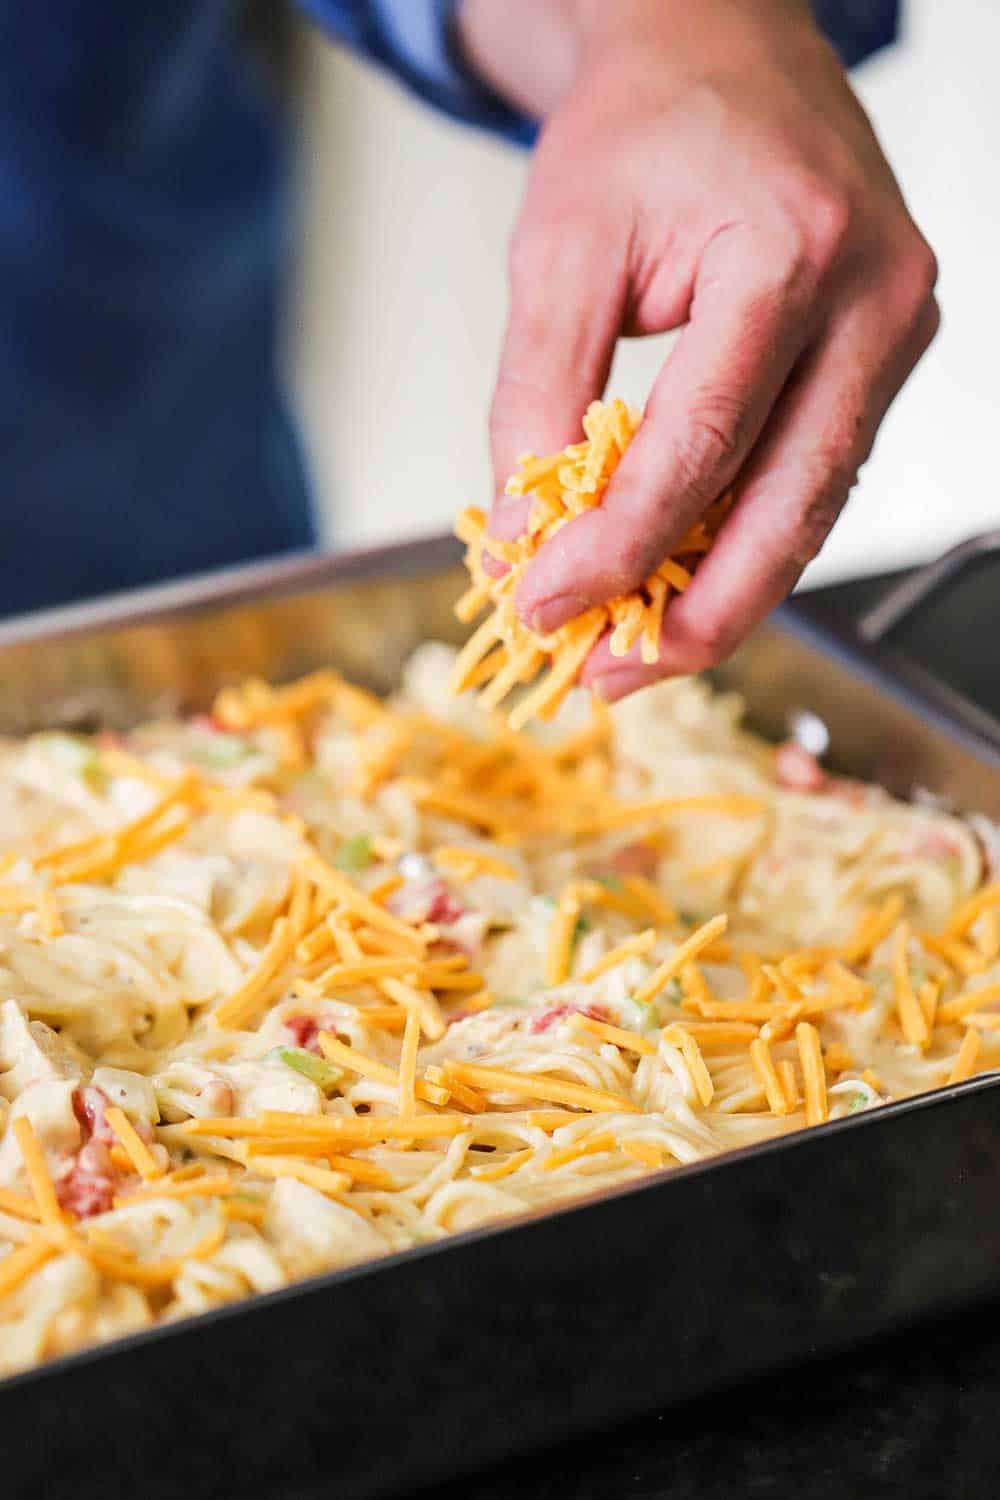 A hand sprinkling shredded cheddar over the top of an uncooked pan of chicken spaghetti.